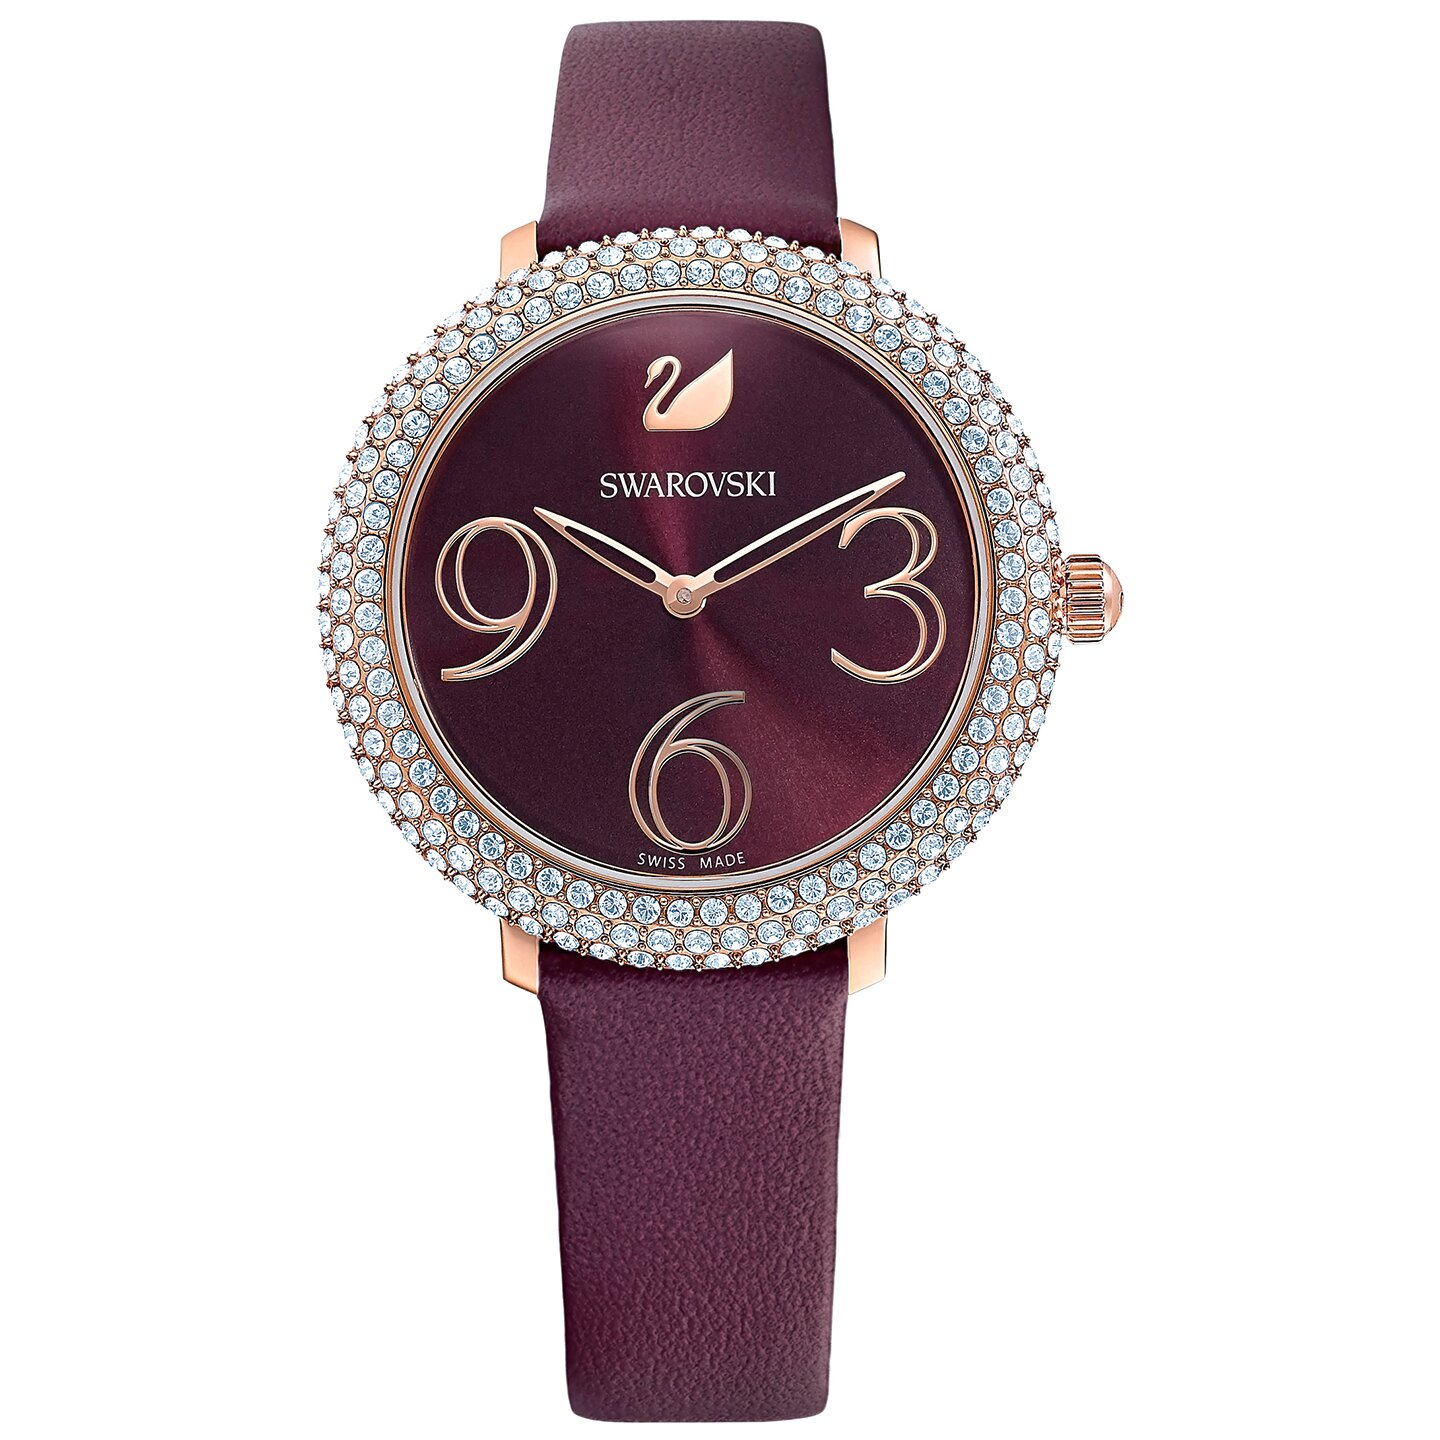 Swarovski Crystal Frost Watch - Leather Strap - Dark red - Rose-gold Tone PVD - 5484064